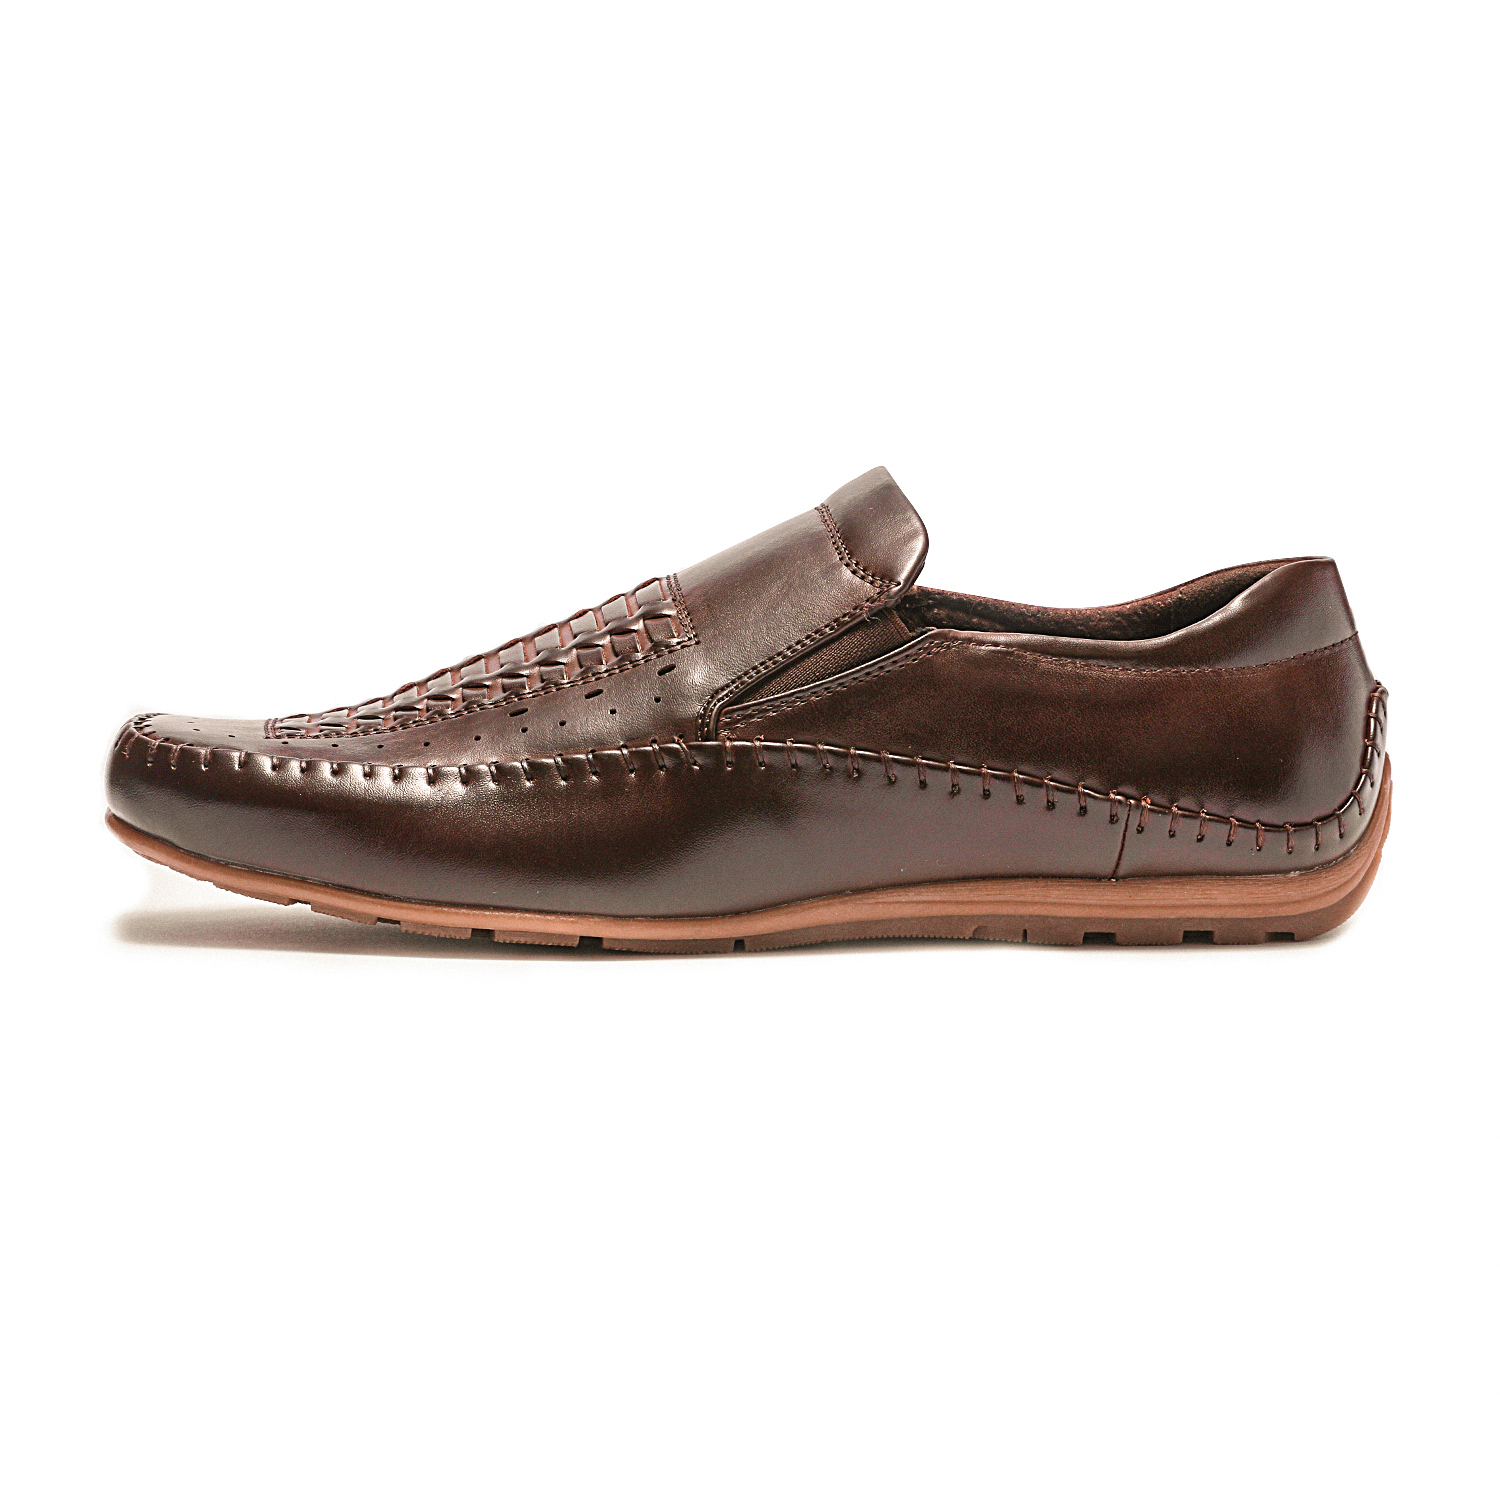 Bruno-Marc-Mens-Penny-Light-Loafers-Moccasins-Driving-Flats-Slip-On-Casual-Shoes thumbnail 29